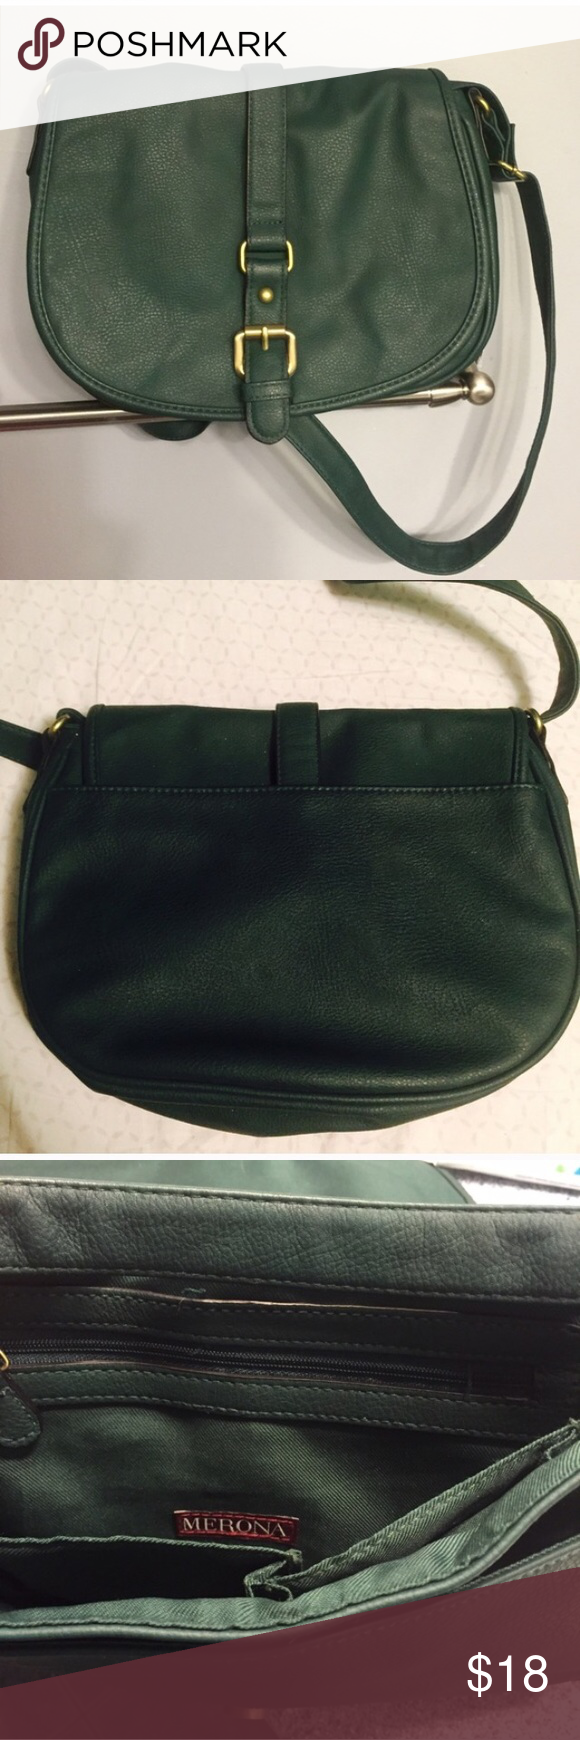 Deep green cross body purse. Used twice. This purse has been well taken care of. Like new. Beautiful green color. Merona Bags Crossbody Bags